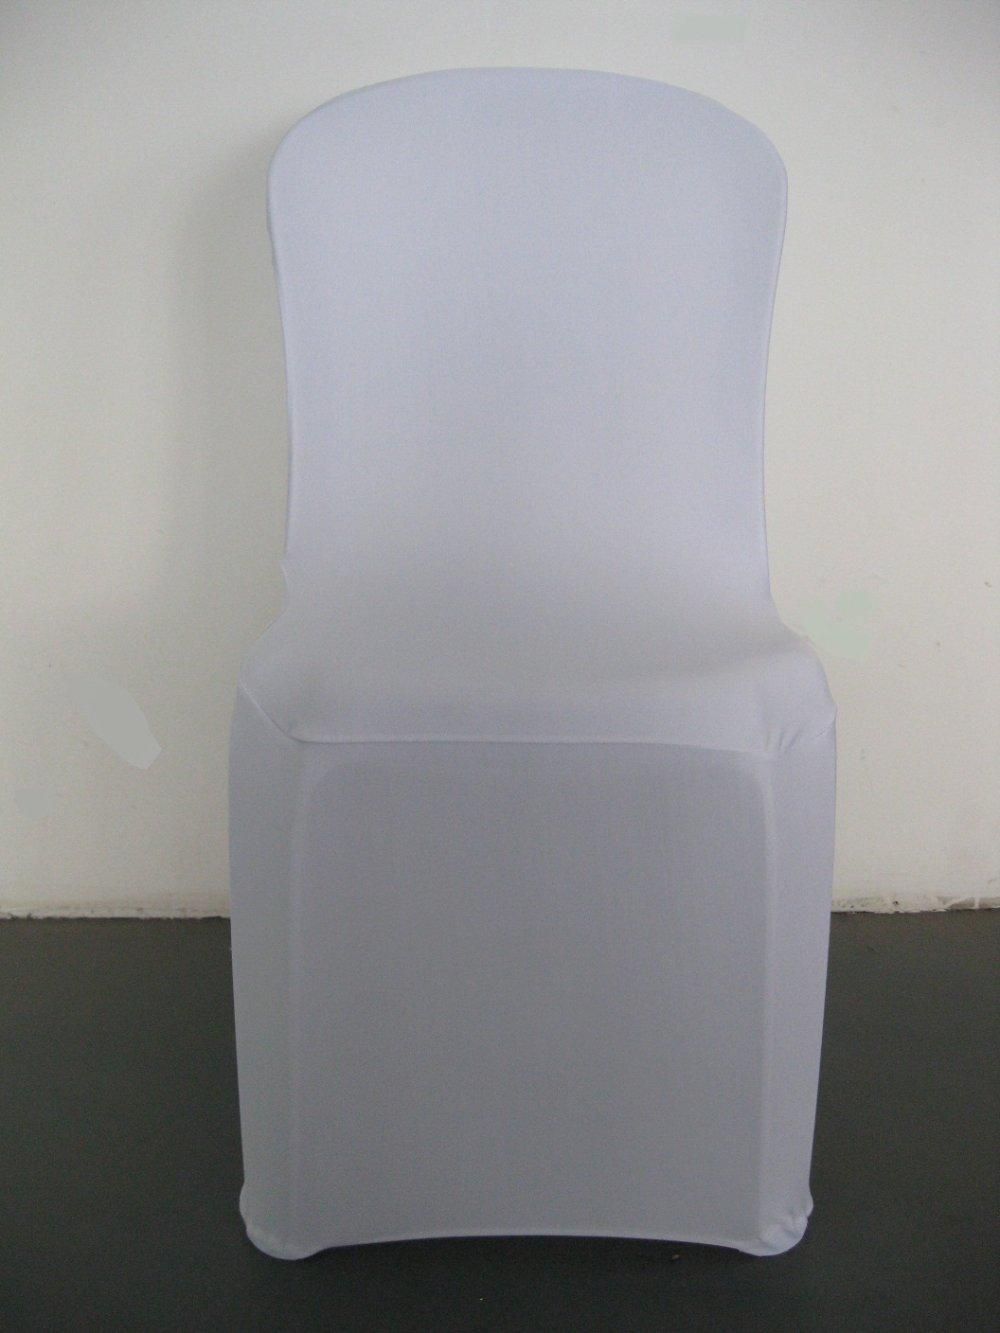 200gsm Thick Spandex Fabric Plastic Chair Cover Various Colors Fit All Chairs High Quality Dhl